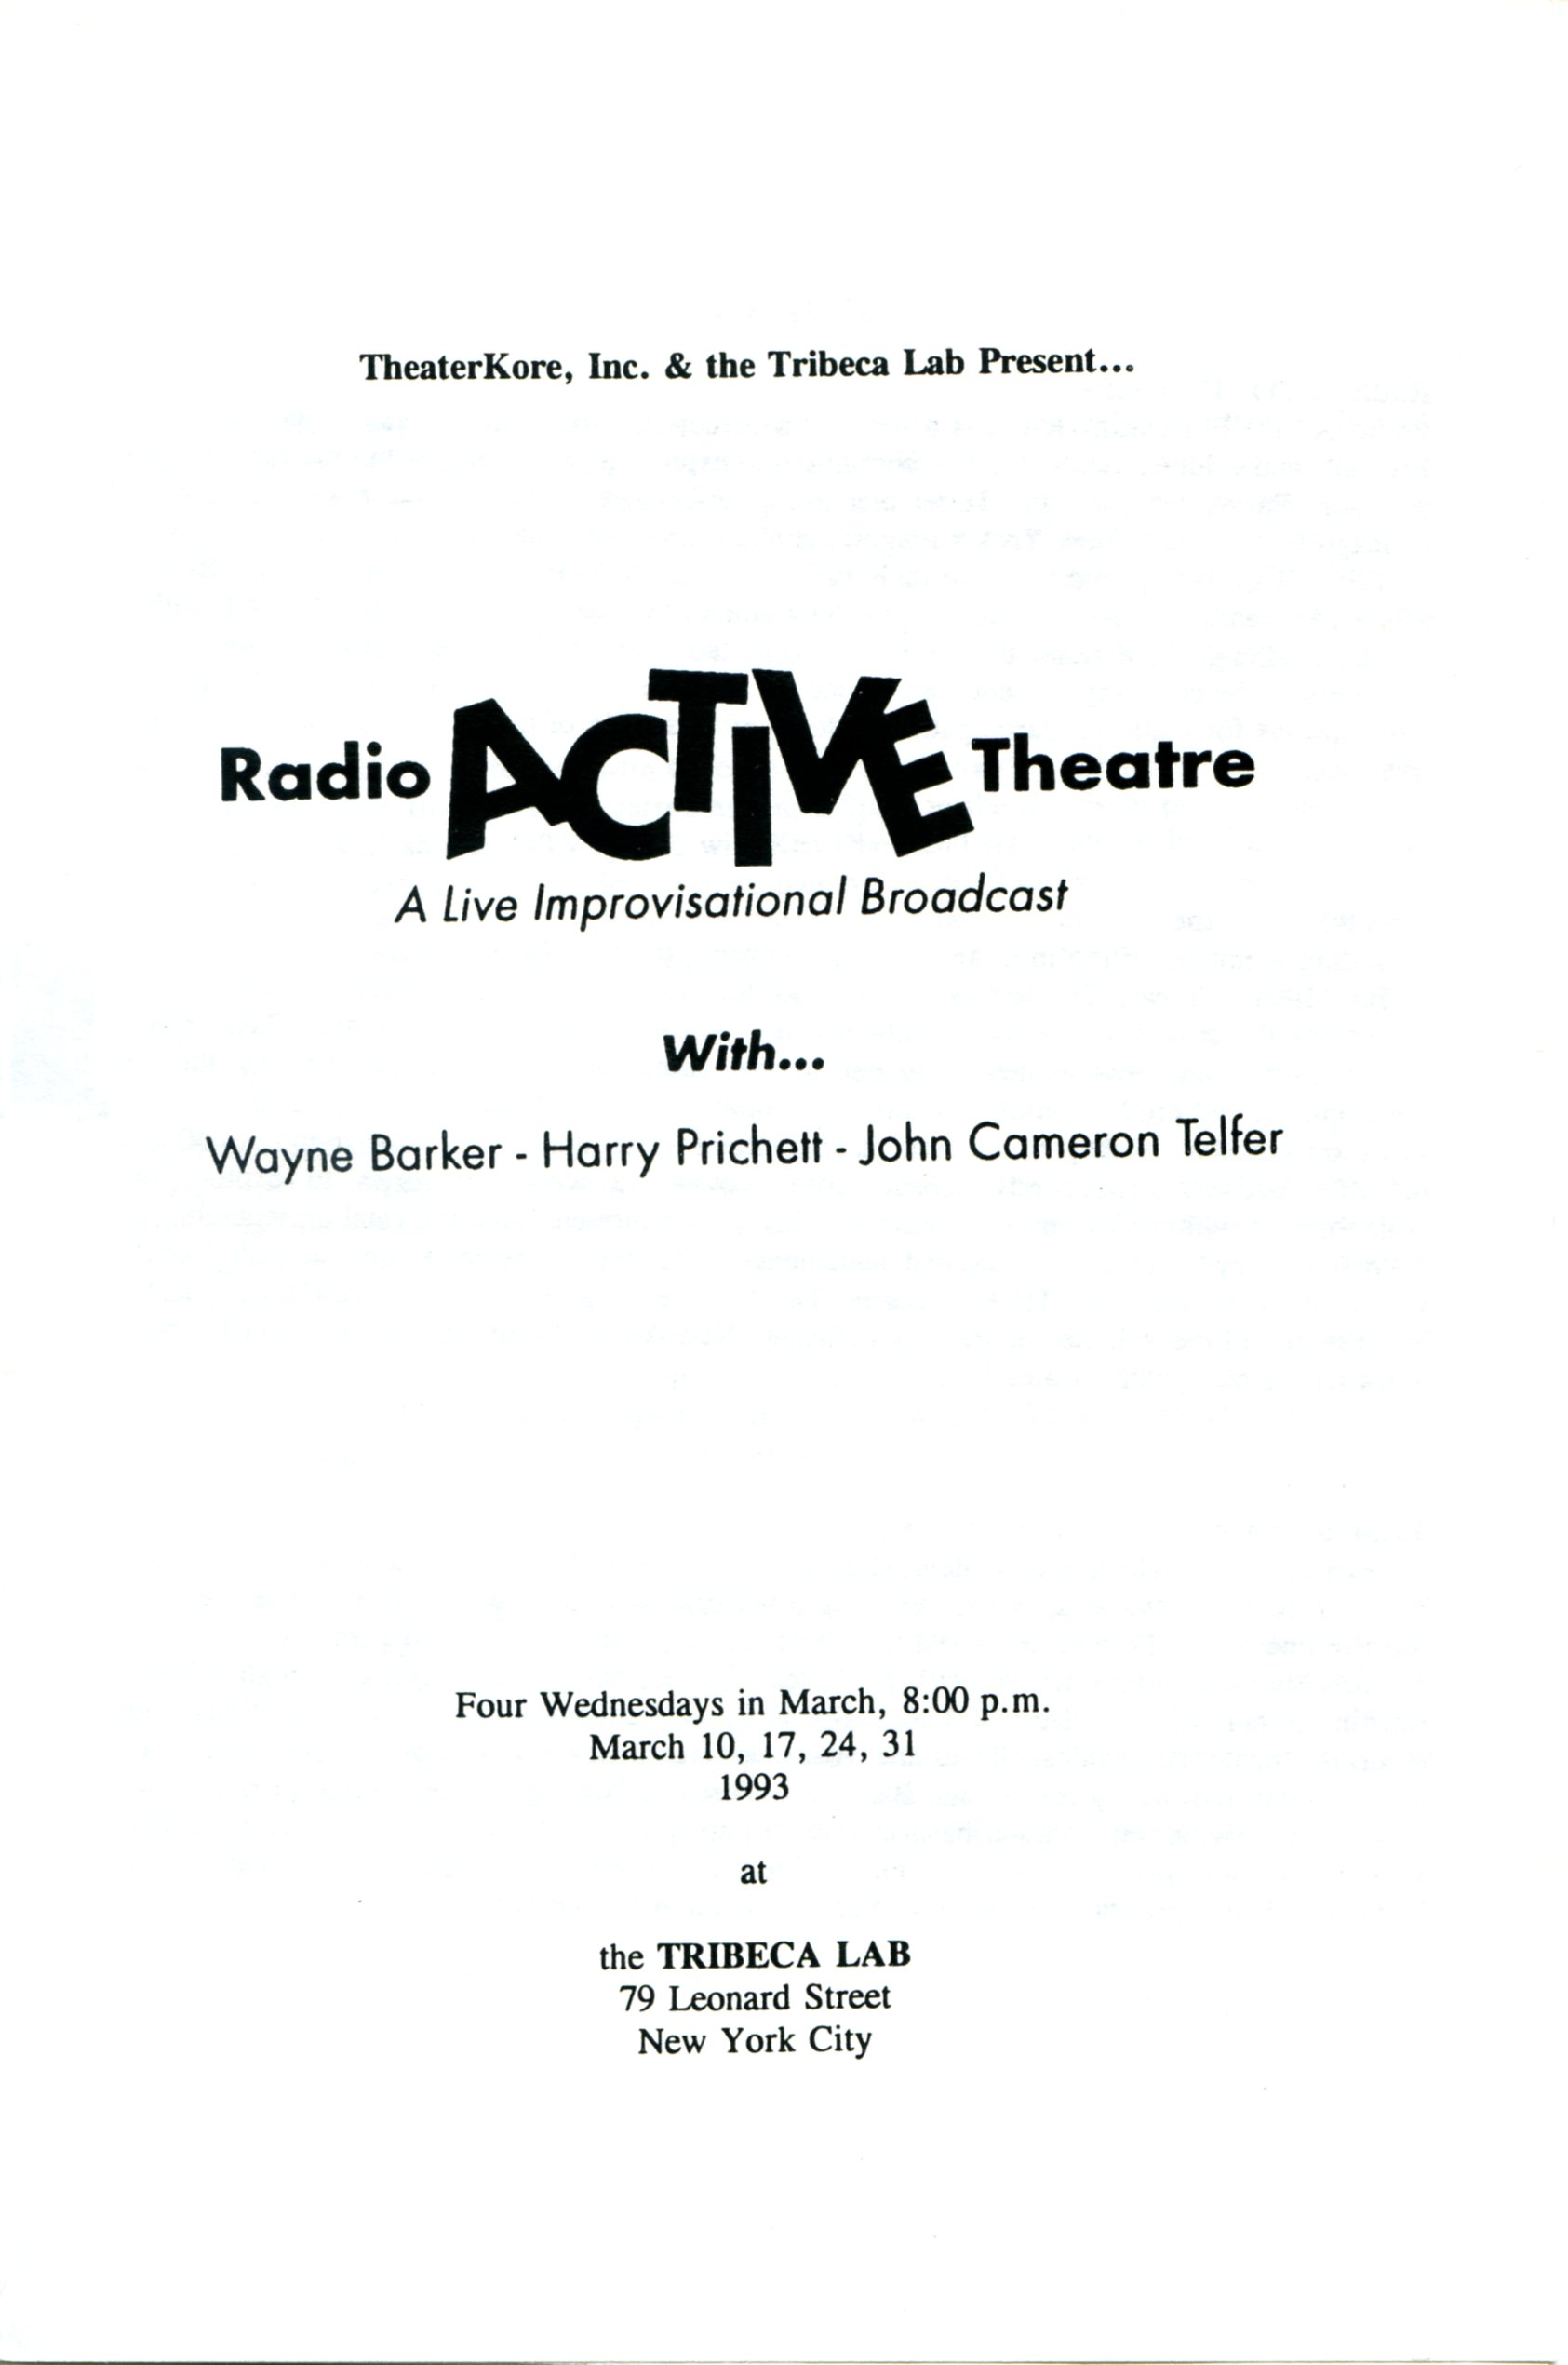 prg_Radioactive theater001.jpg